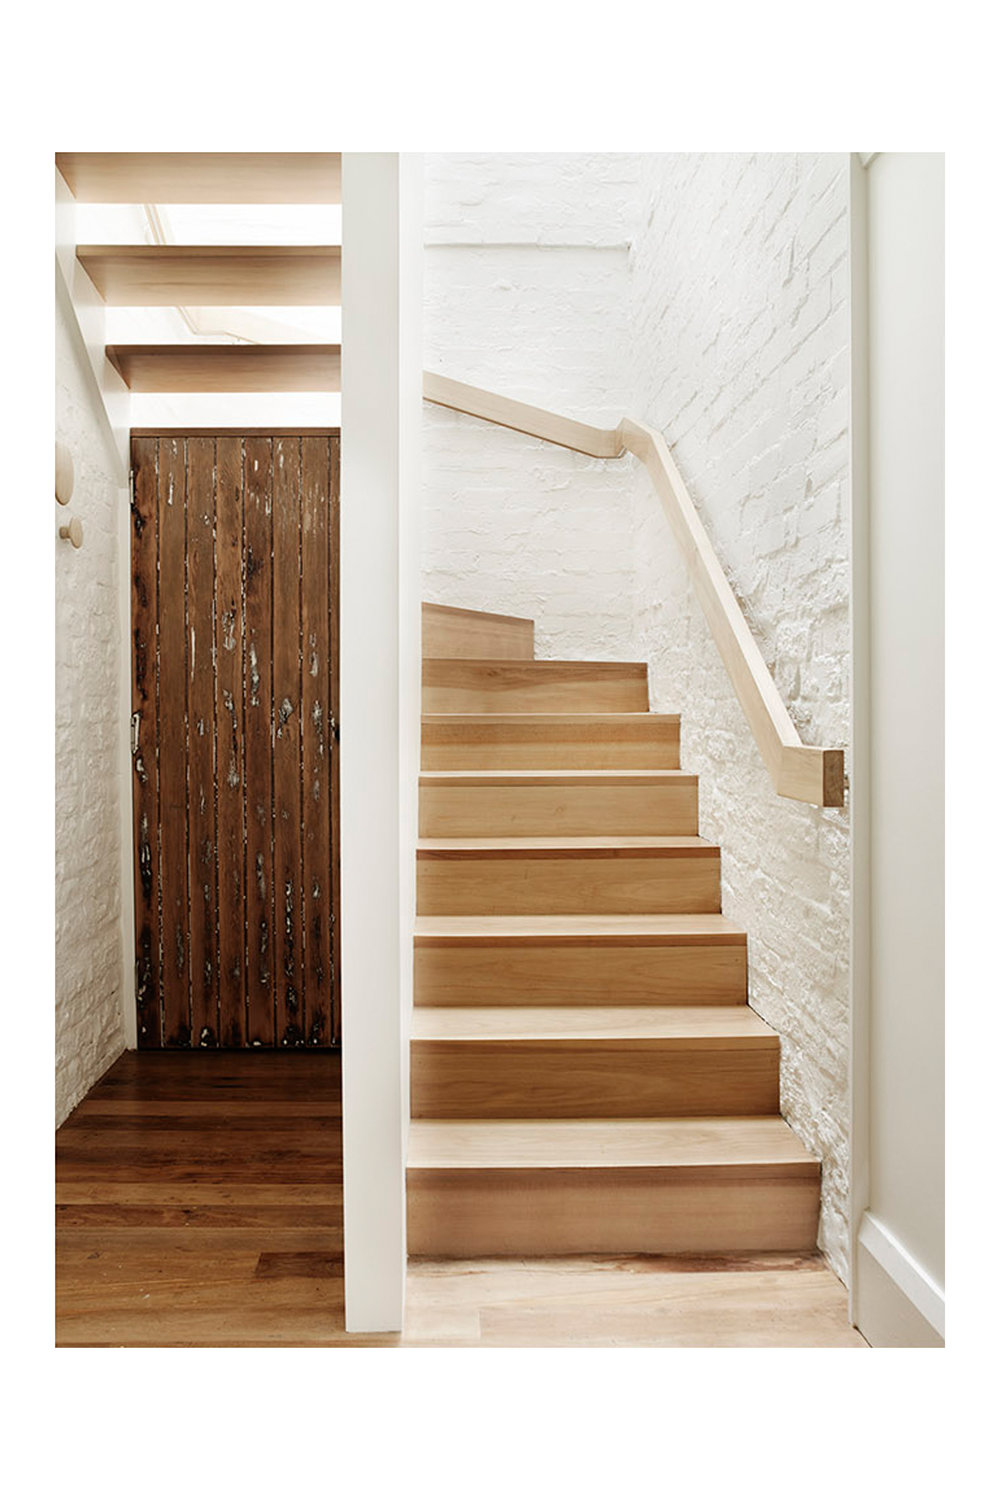 """The stair is our favourite element, especially the illuminated handrail"" - – Emma and Bruce, Clients"